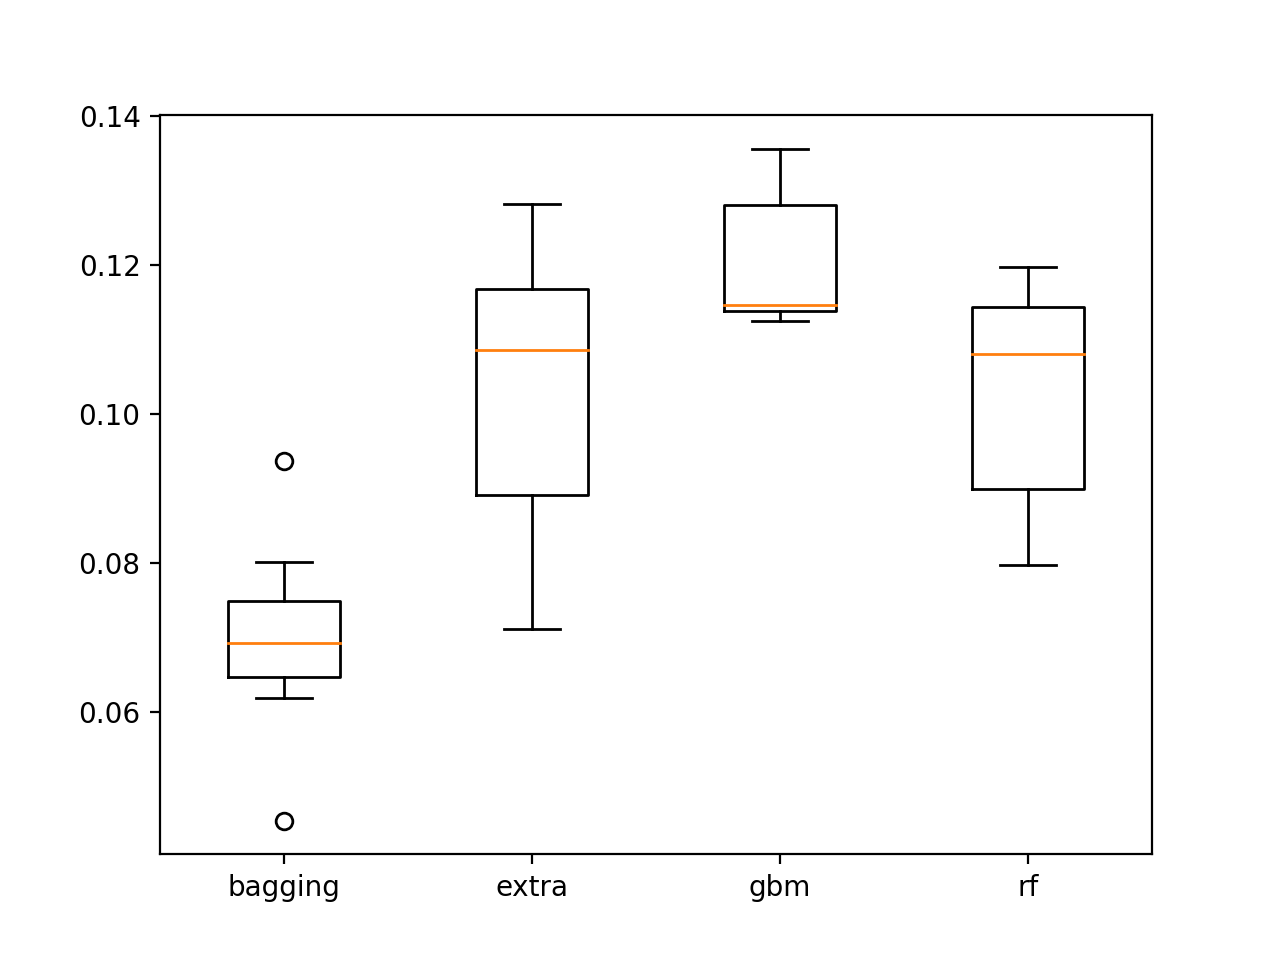 Box and whisker plot of ensemble decision tree BSS scores on the test set